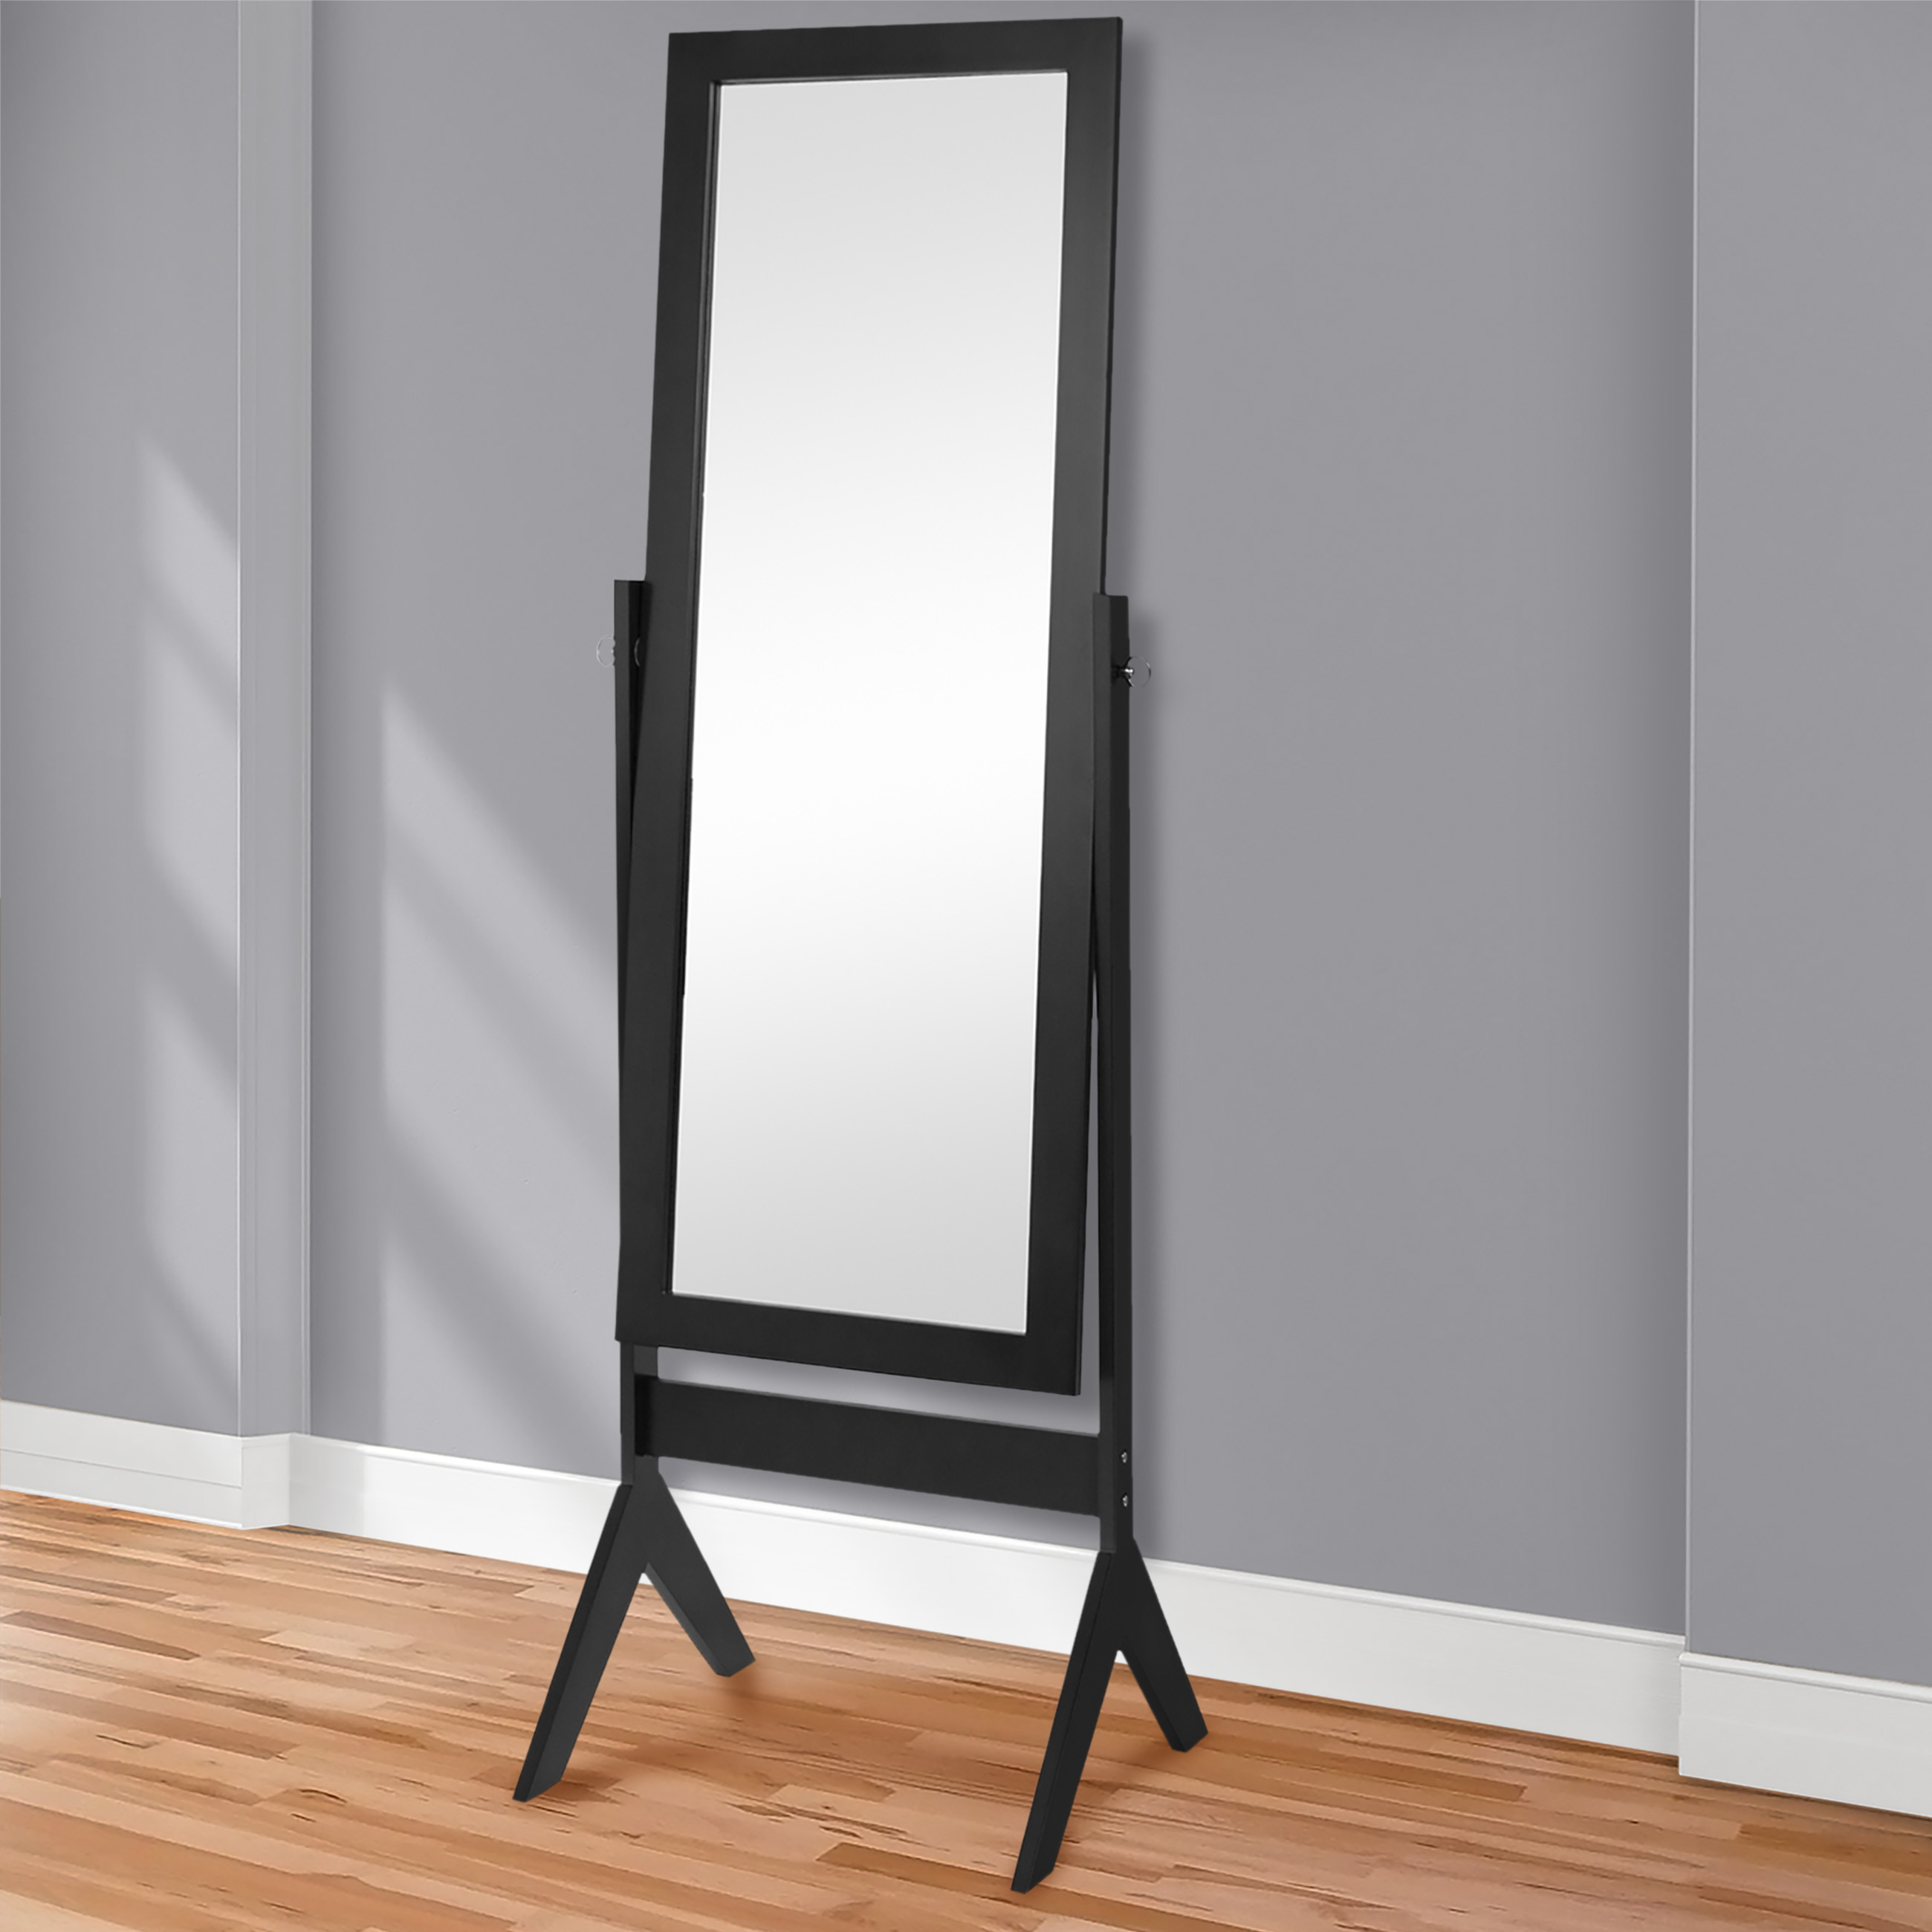 Best Choice Products Cheval Floor Mirror Bedroom Home Furniture  Black